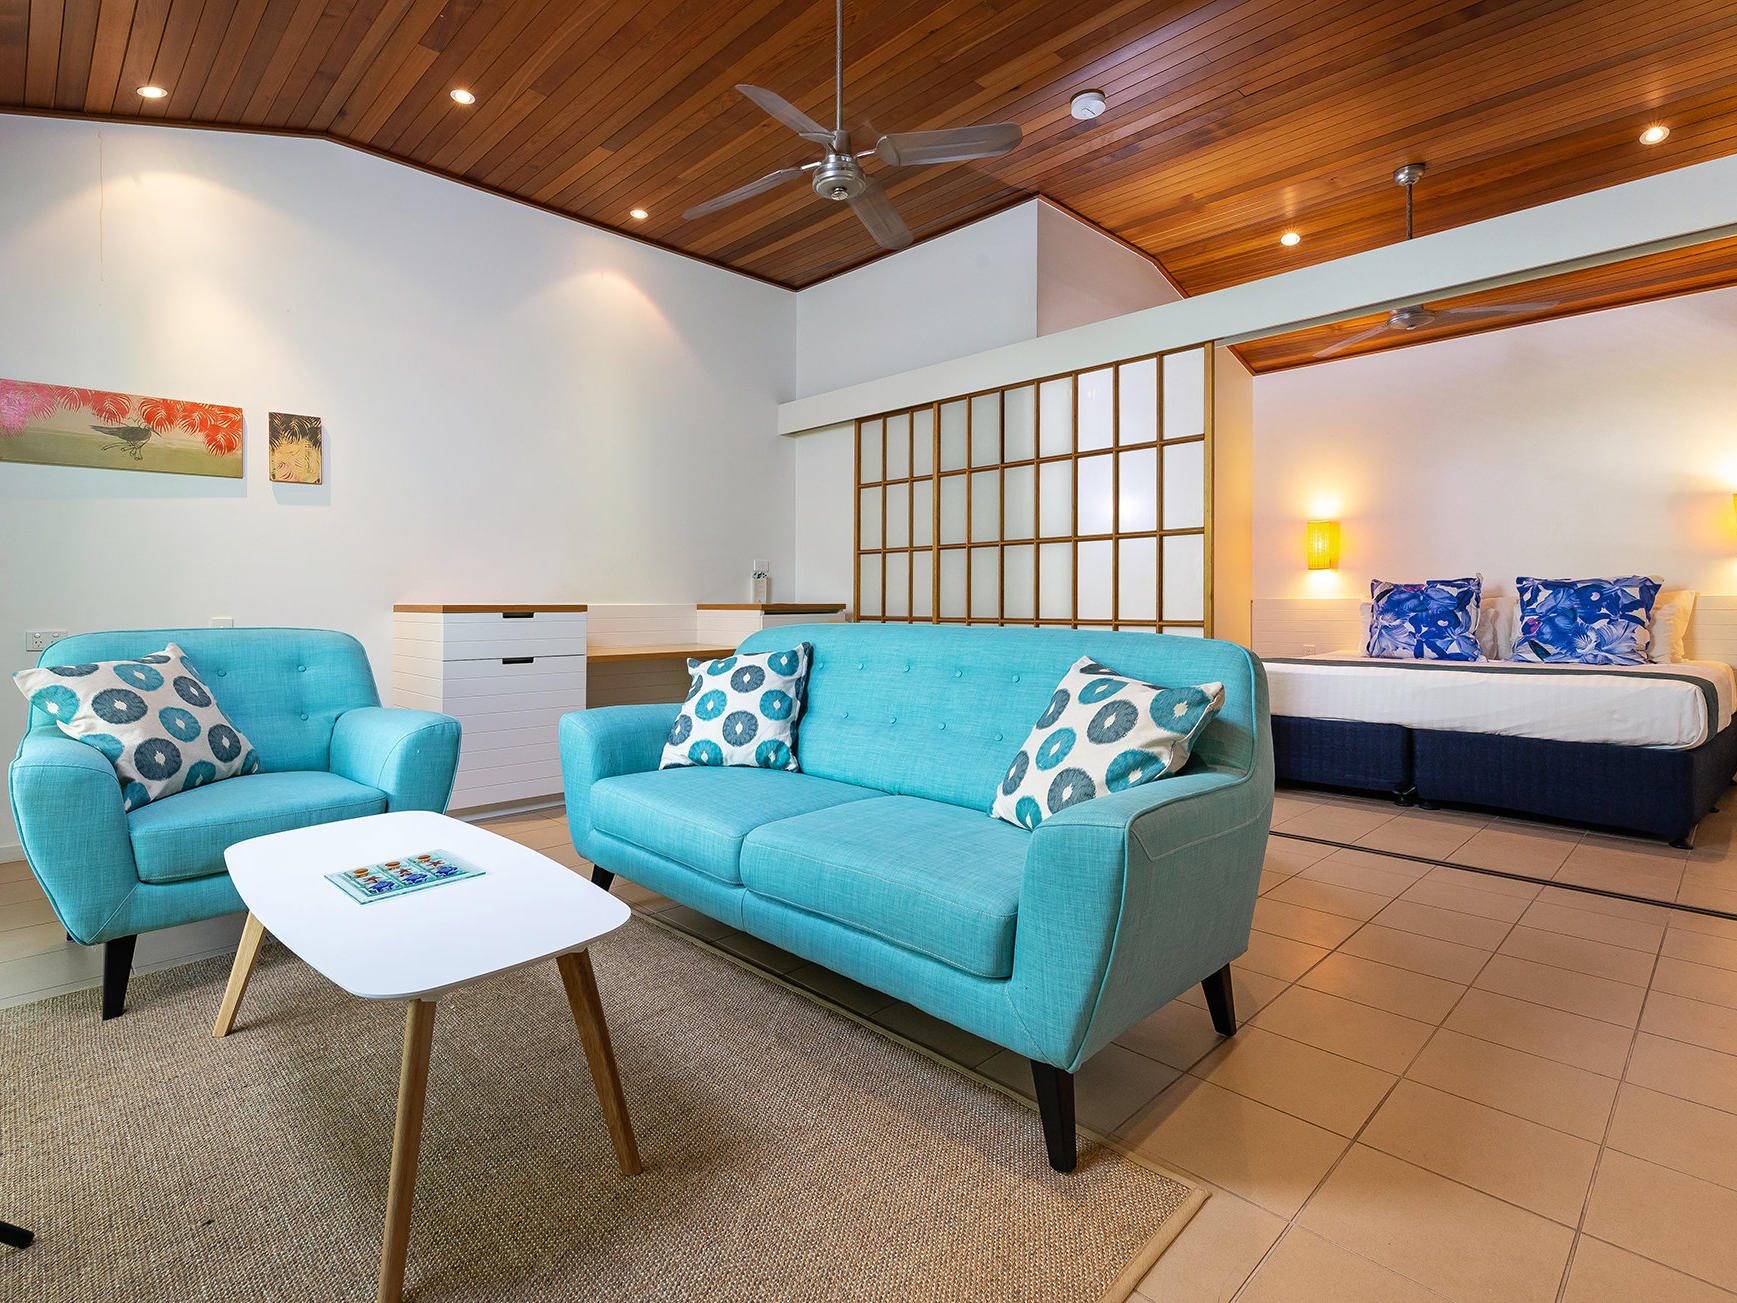 Wistari Suite at Heron Island Resort in Queensland, Australia